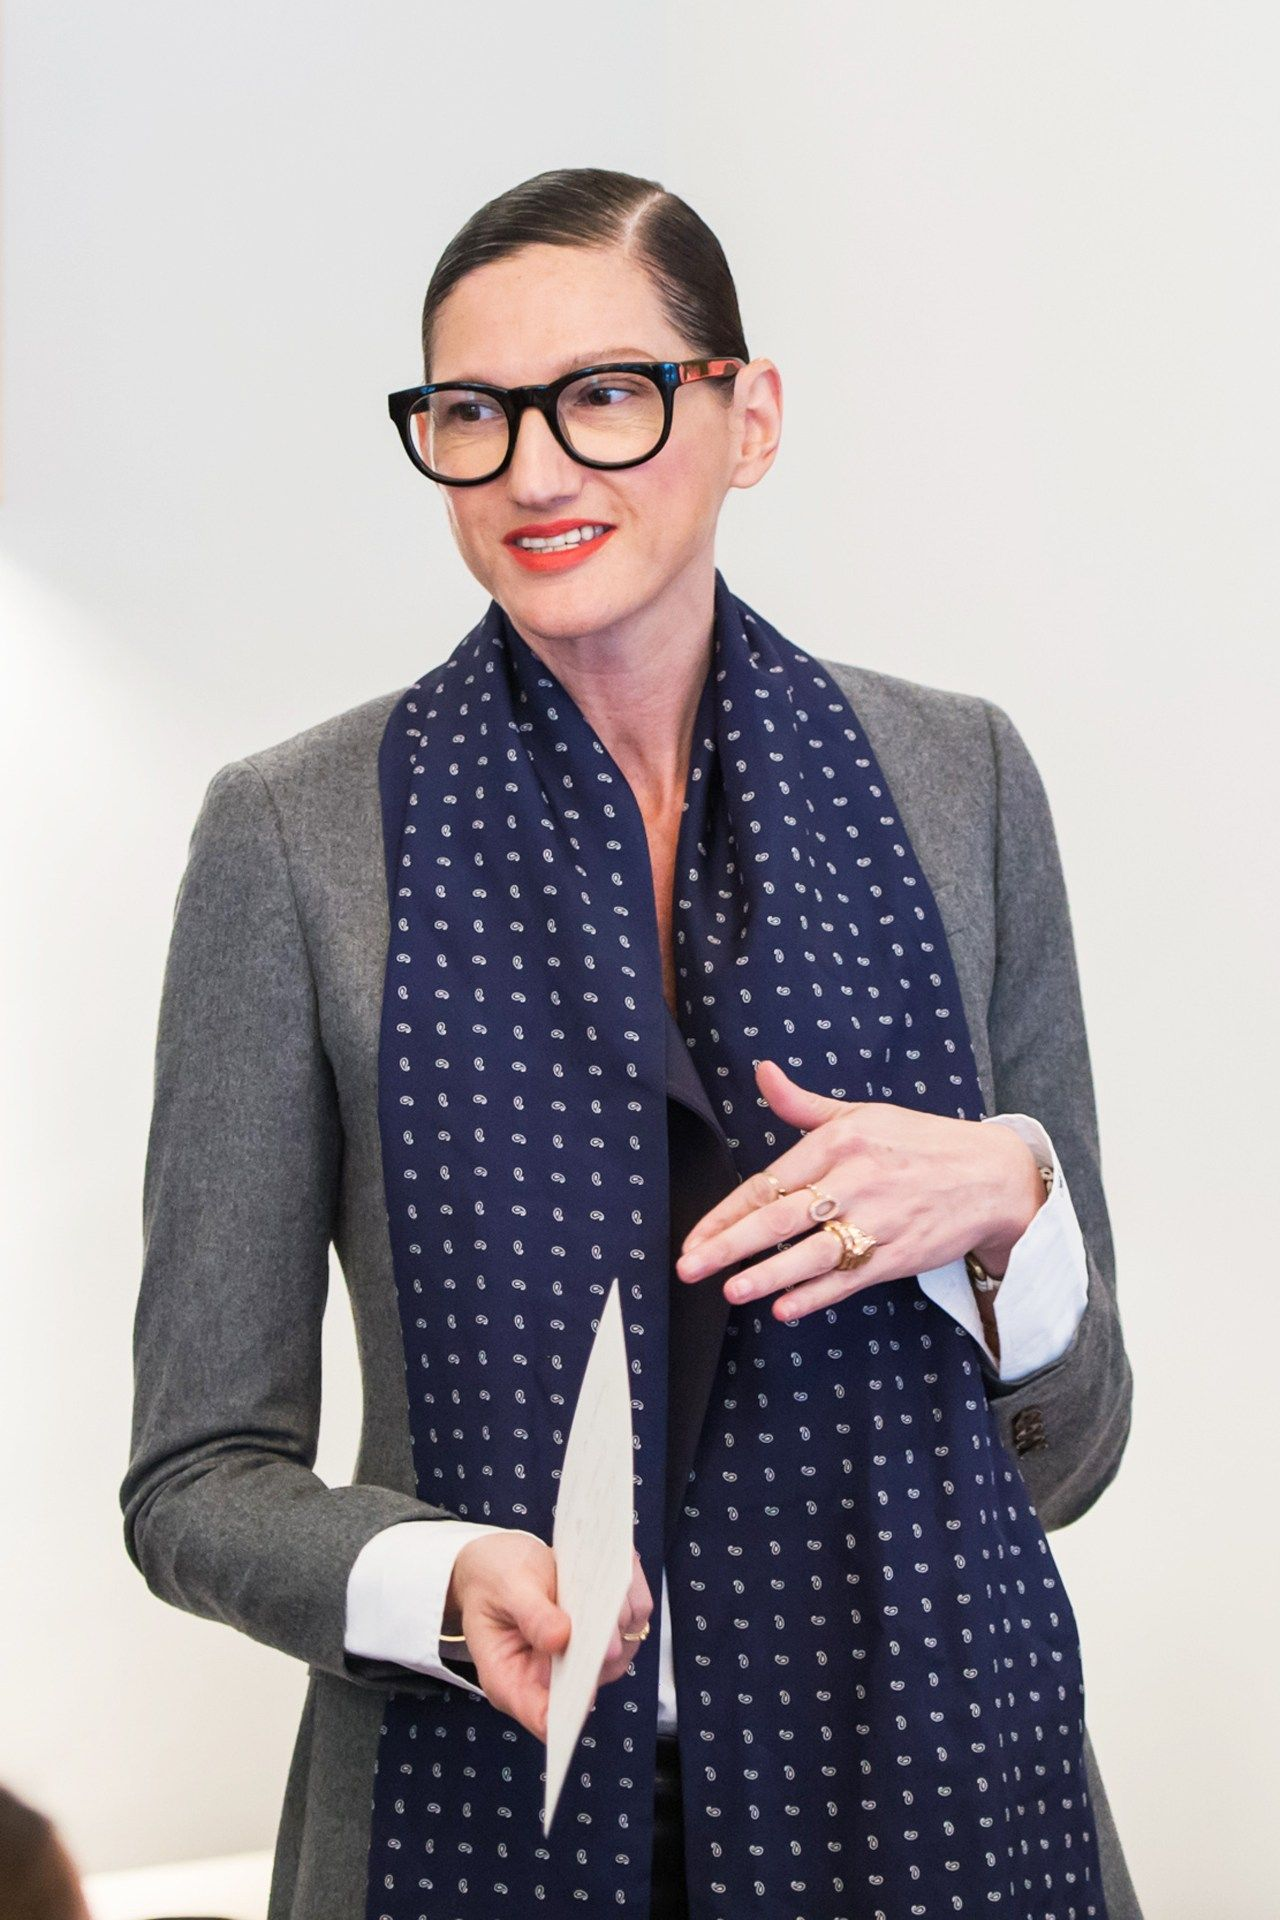 jenna lyons 2016jenna lyons style, jenna lyons 2016, jenna lyons in the bag, jenna lyons wiki, jenna lyons biography, jenna lyons wife, jenna lyons met gala, jenna lyons style 2016, jenna lyons street style, jenna lyons office, jenna lyons instagram, jenna lyons height, jenna lyons youtube, jenna lyons height weight